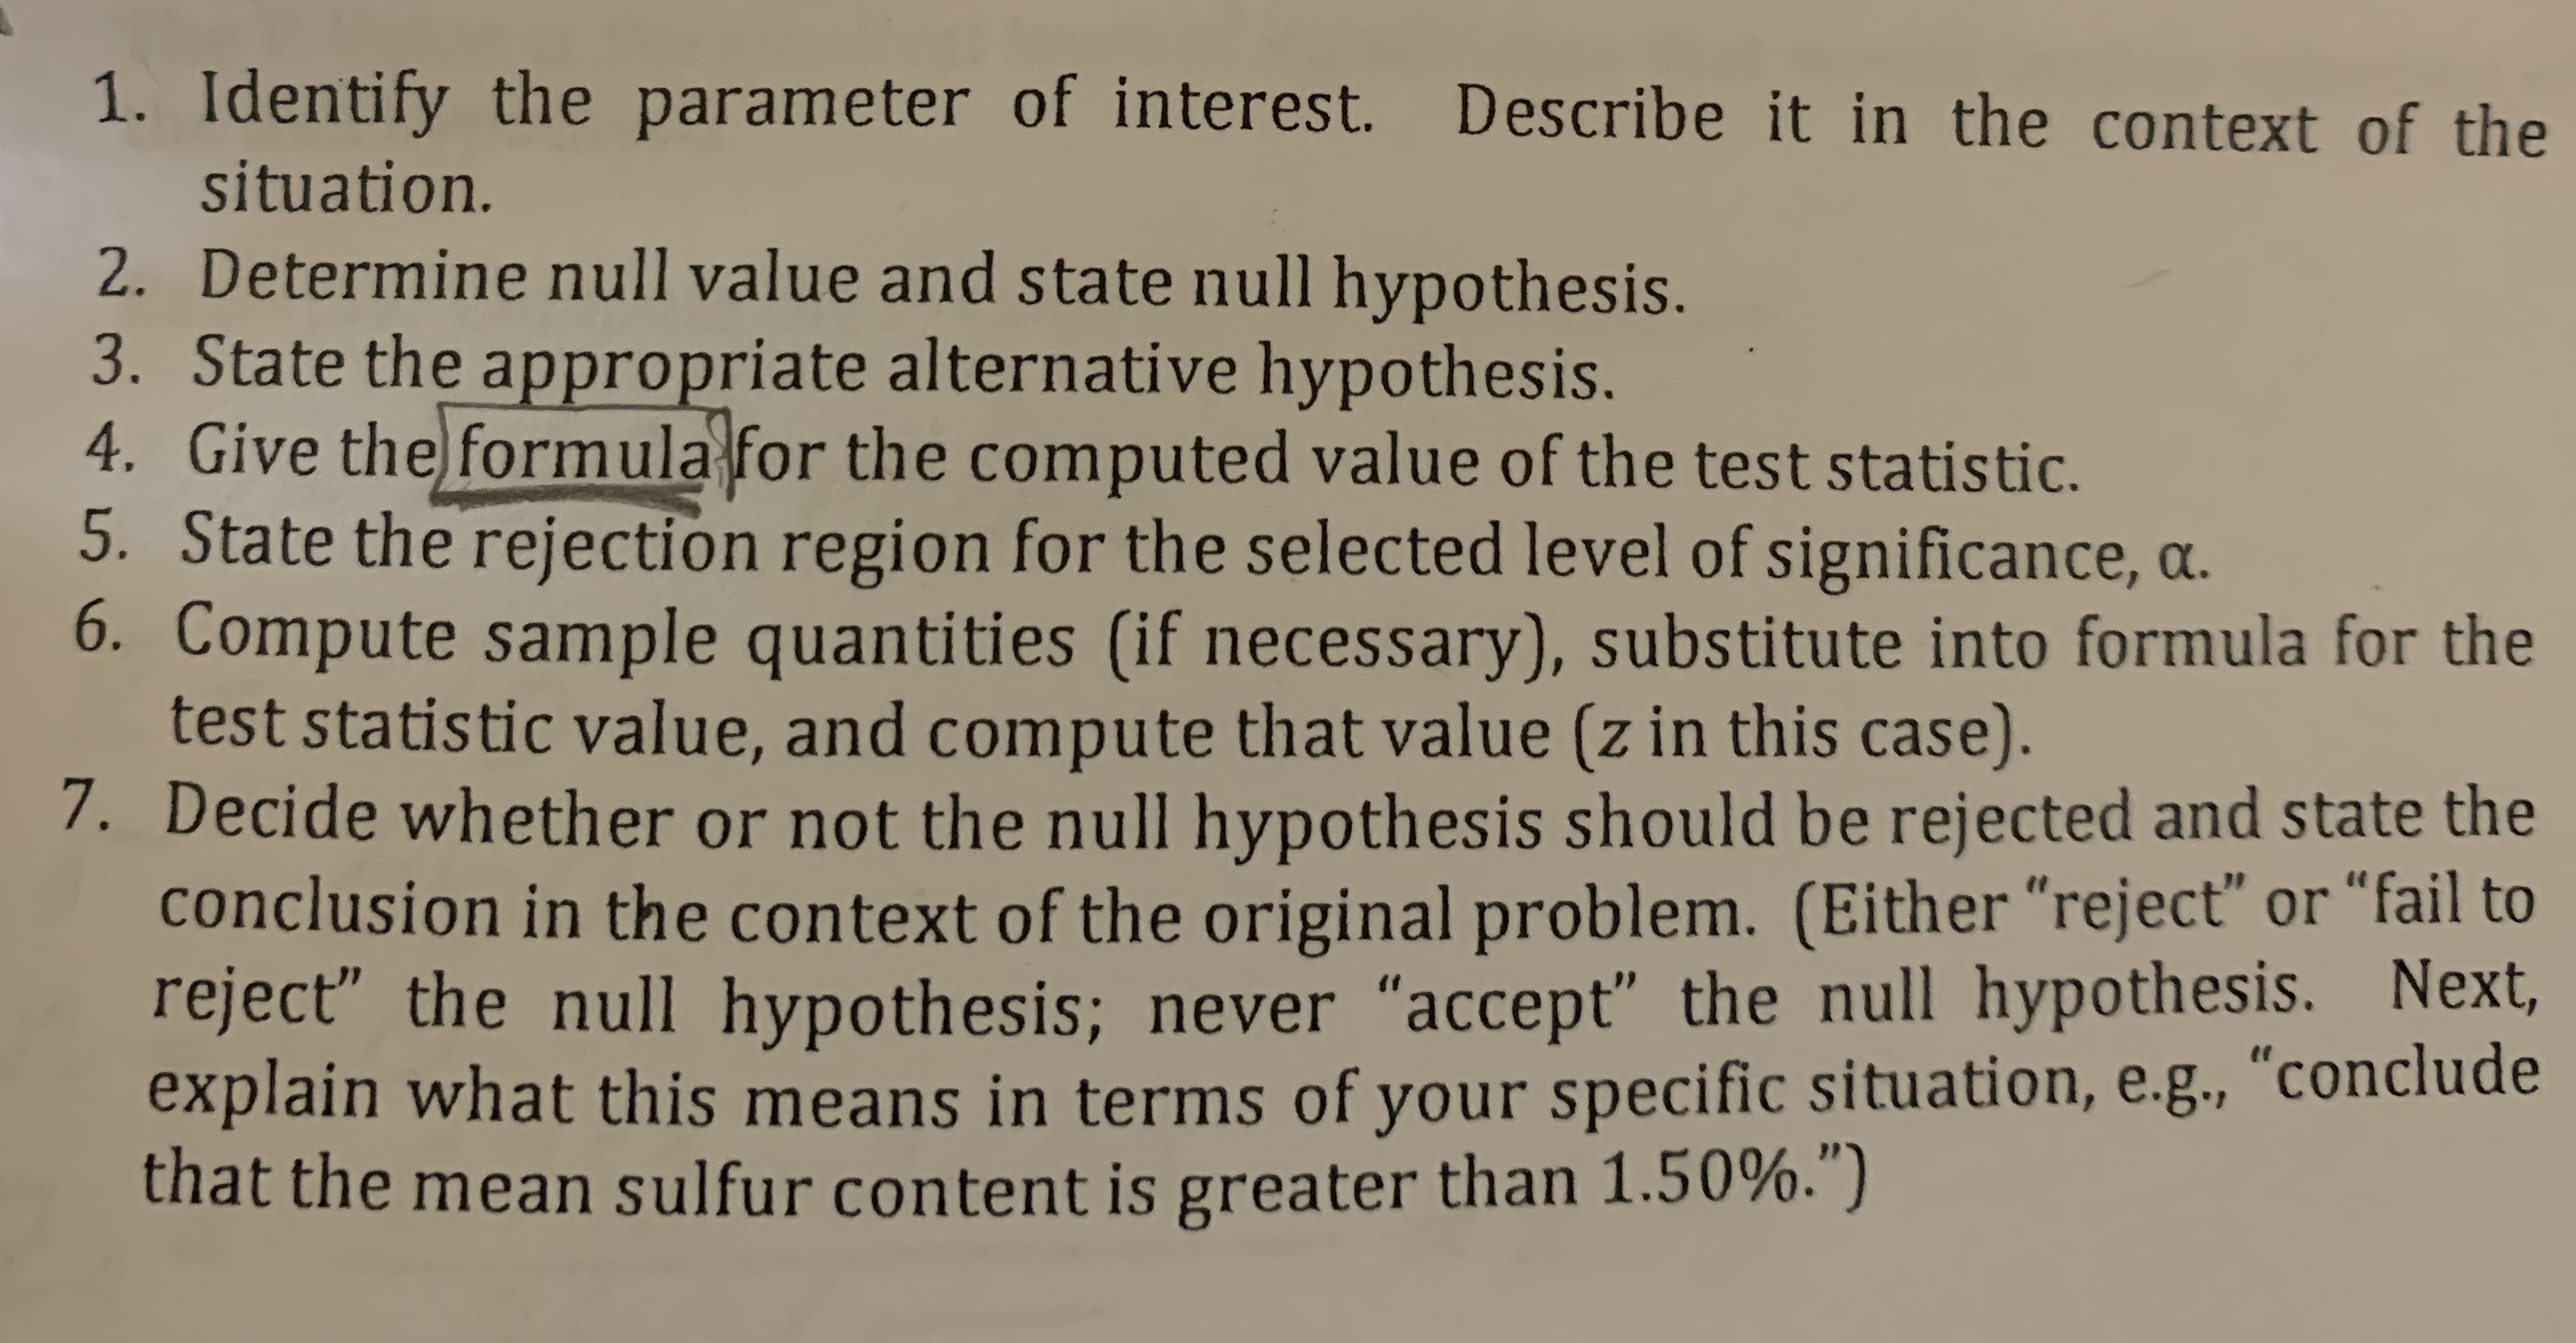 """1. Identify the parameter of interest. Describe it in the context of the situation. 2. Determine null value and state null hypothesis. 3. State the appropriate alternative hypothesis. 4. Give the formula for the computed value of the test statistic. 5. State the rejection region for the selected level of significance, a. 6. Compute sample quantities (if necessary), substitute into formula for the test statistic value, and compute that value (z in this case). 7. Decide whether or not the null hypothesis should be rejected and state the conclusion in the context of the original problem. (Either """"reject"""" or """"fail to reject the null hypothesis; never """"accept"""" the null hypothesis. Next, explain what this means in terms of your specific situation, e.g., """"conclude that the mean sulfur content is greater than 1.50%."""")"""